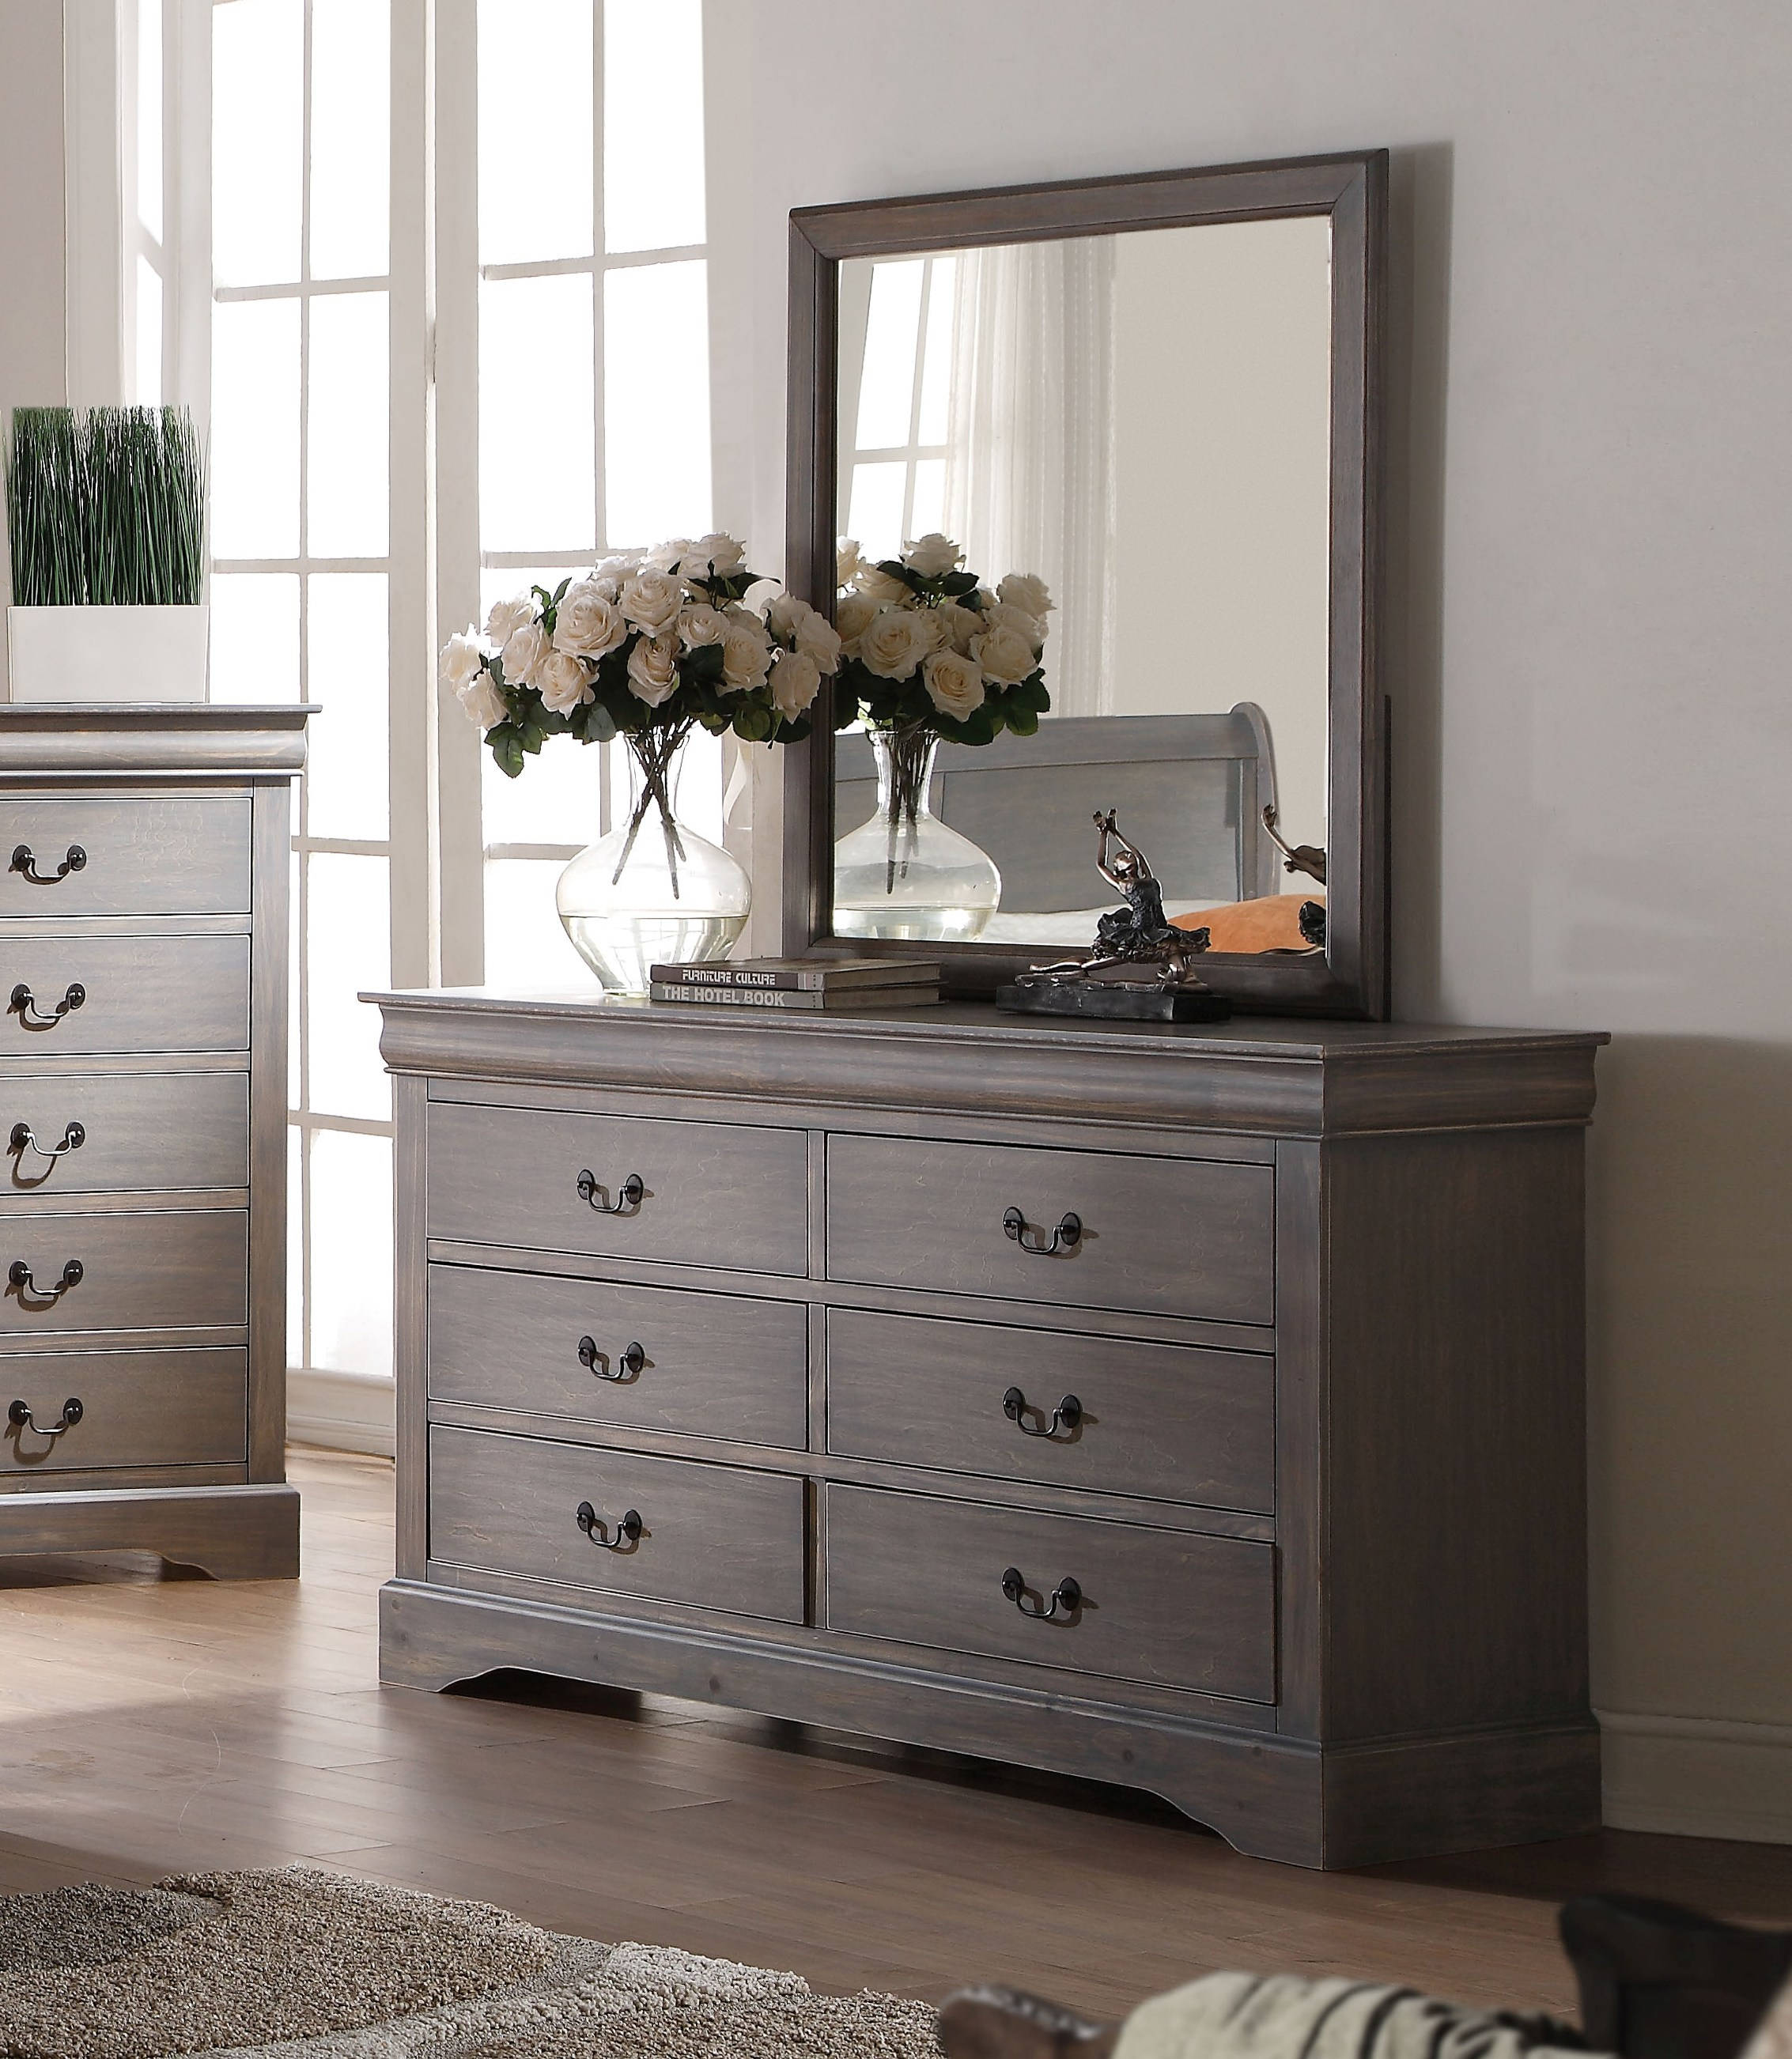 Acme Furniture Louis Philippe Iii Antique Gray Dresser And